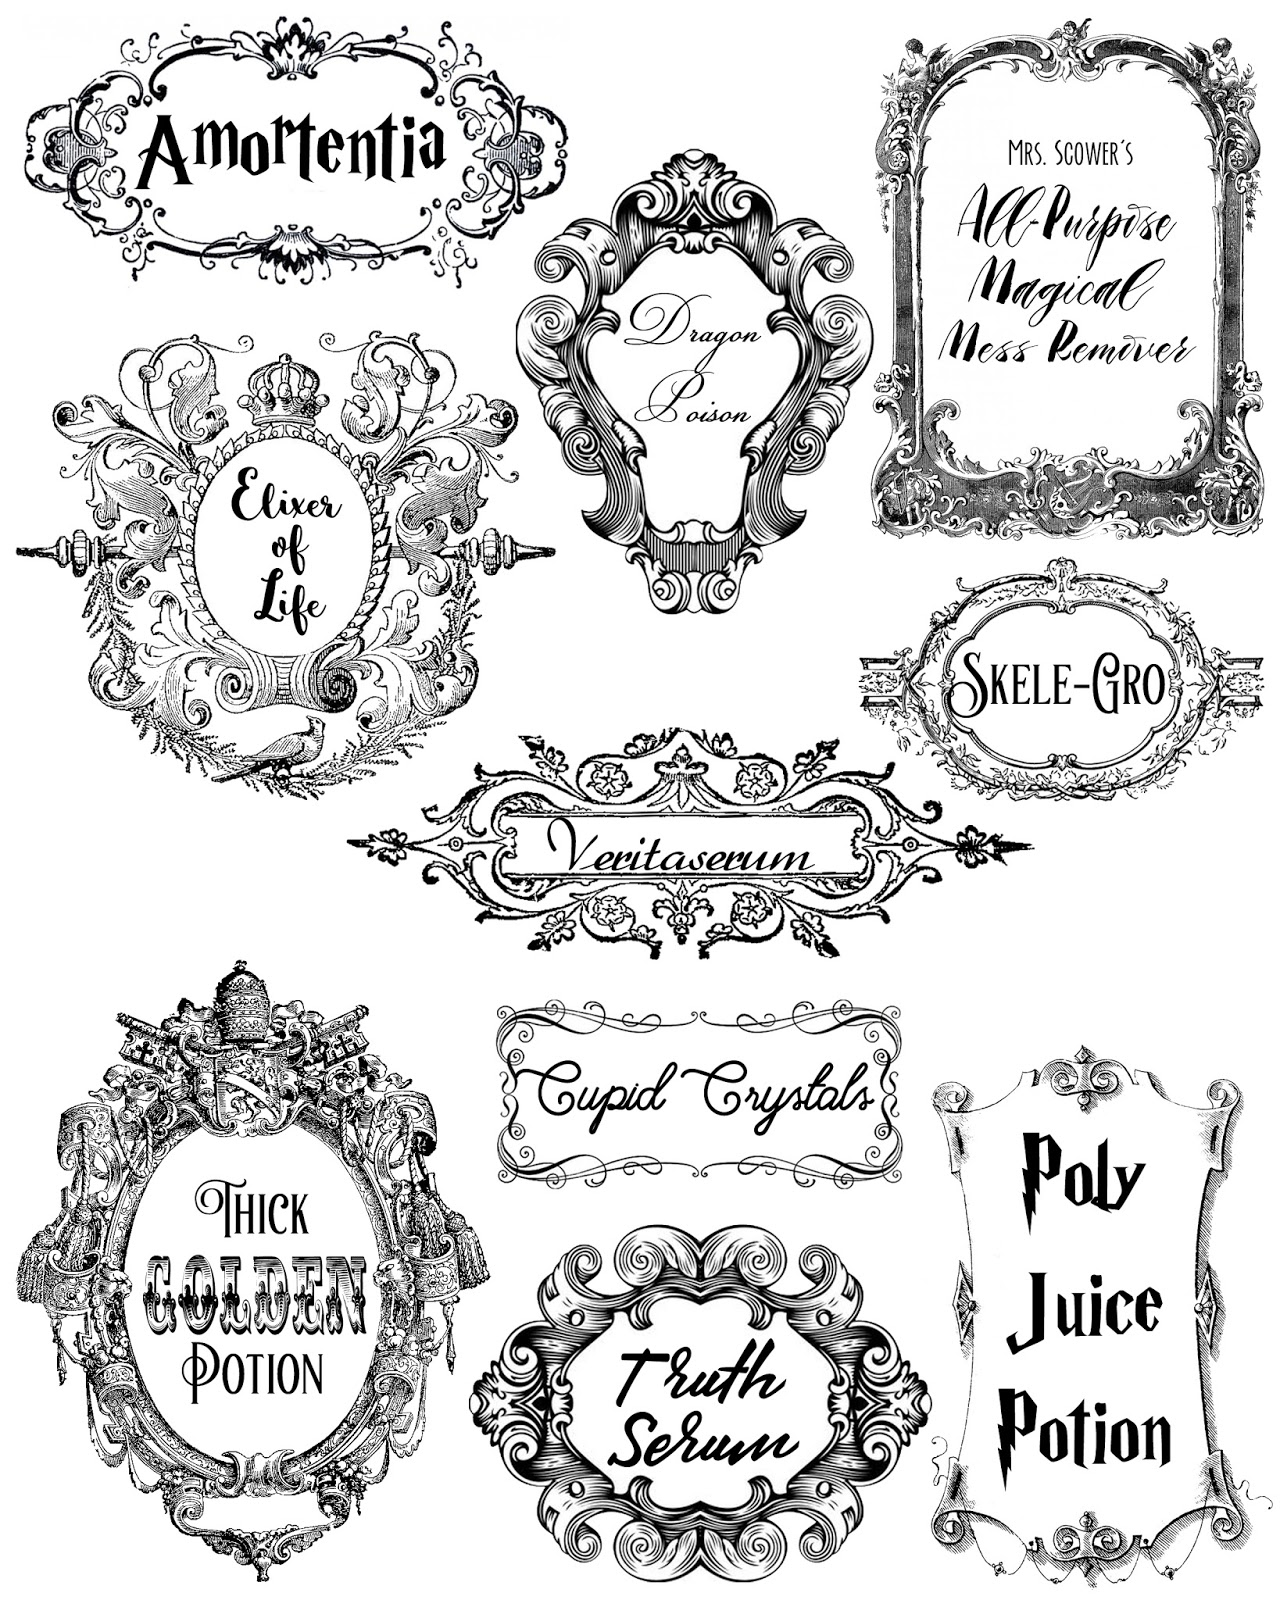 graphic relating to Printable Harry Potter Potion Labels known as Potions and Contaminants!